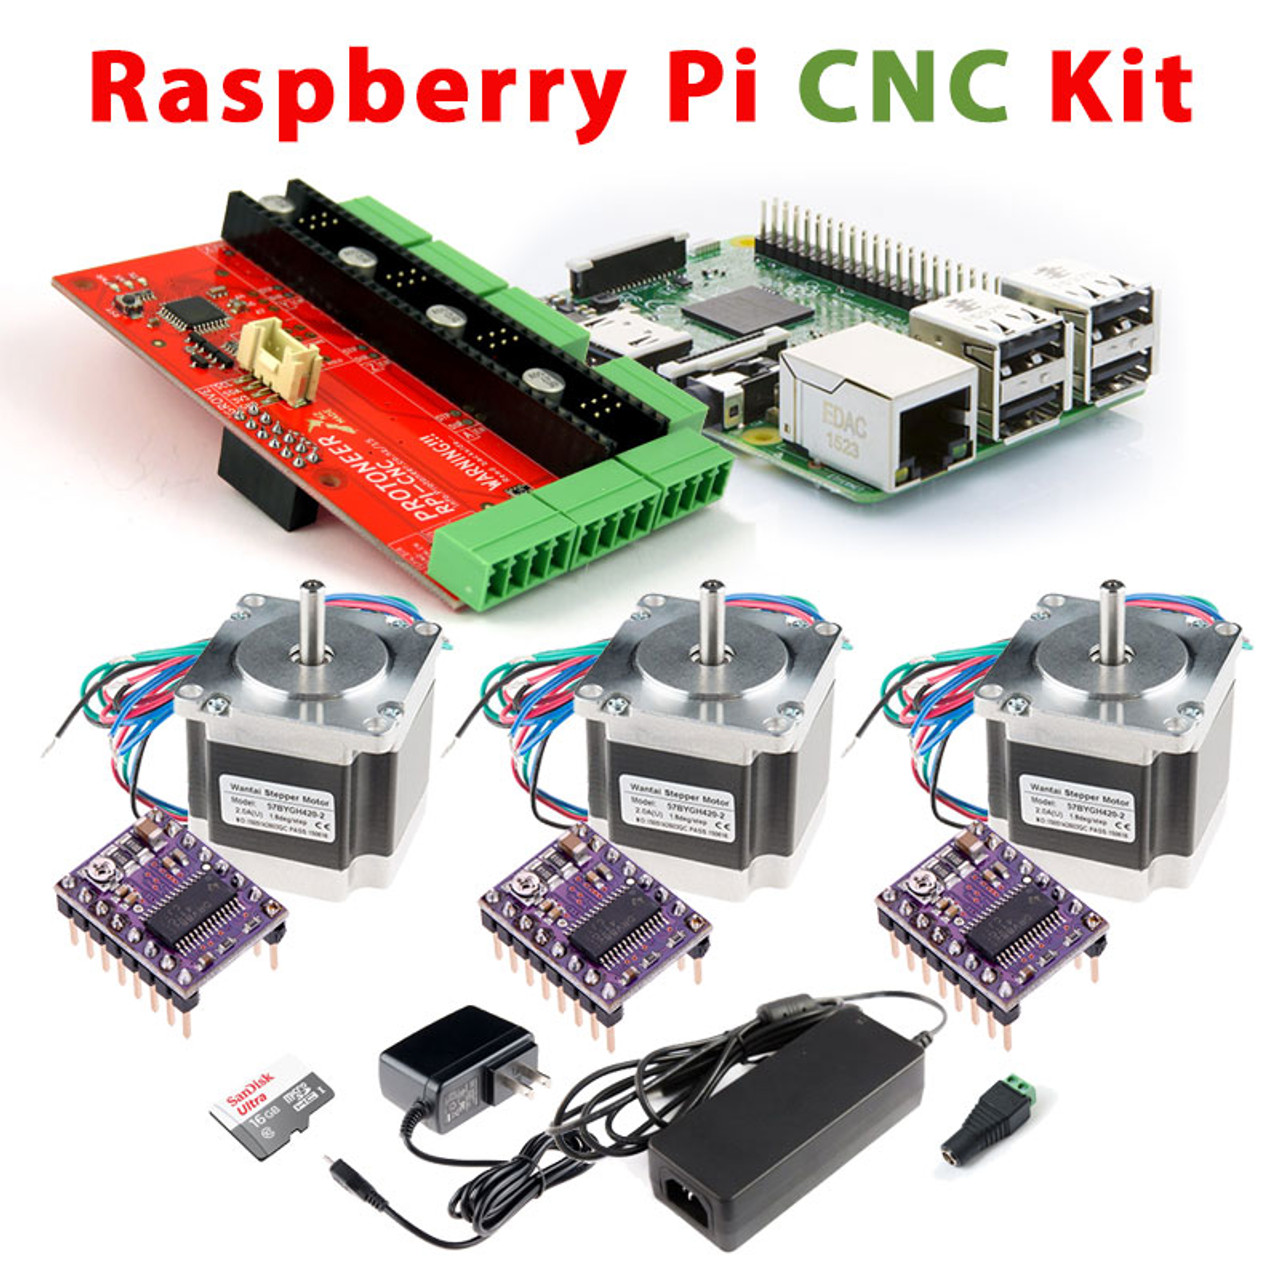 Raspberry Pi CNC Kit